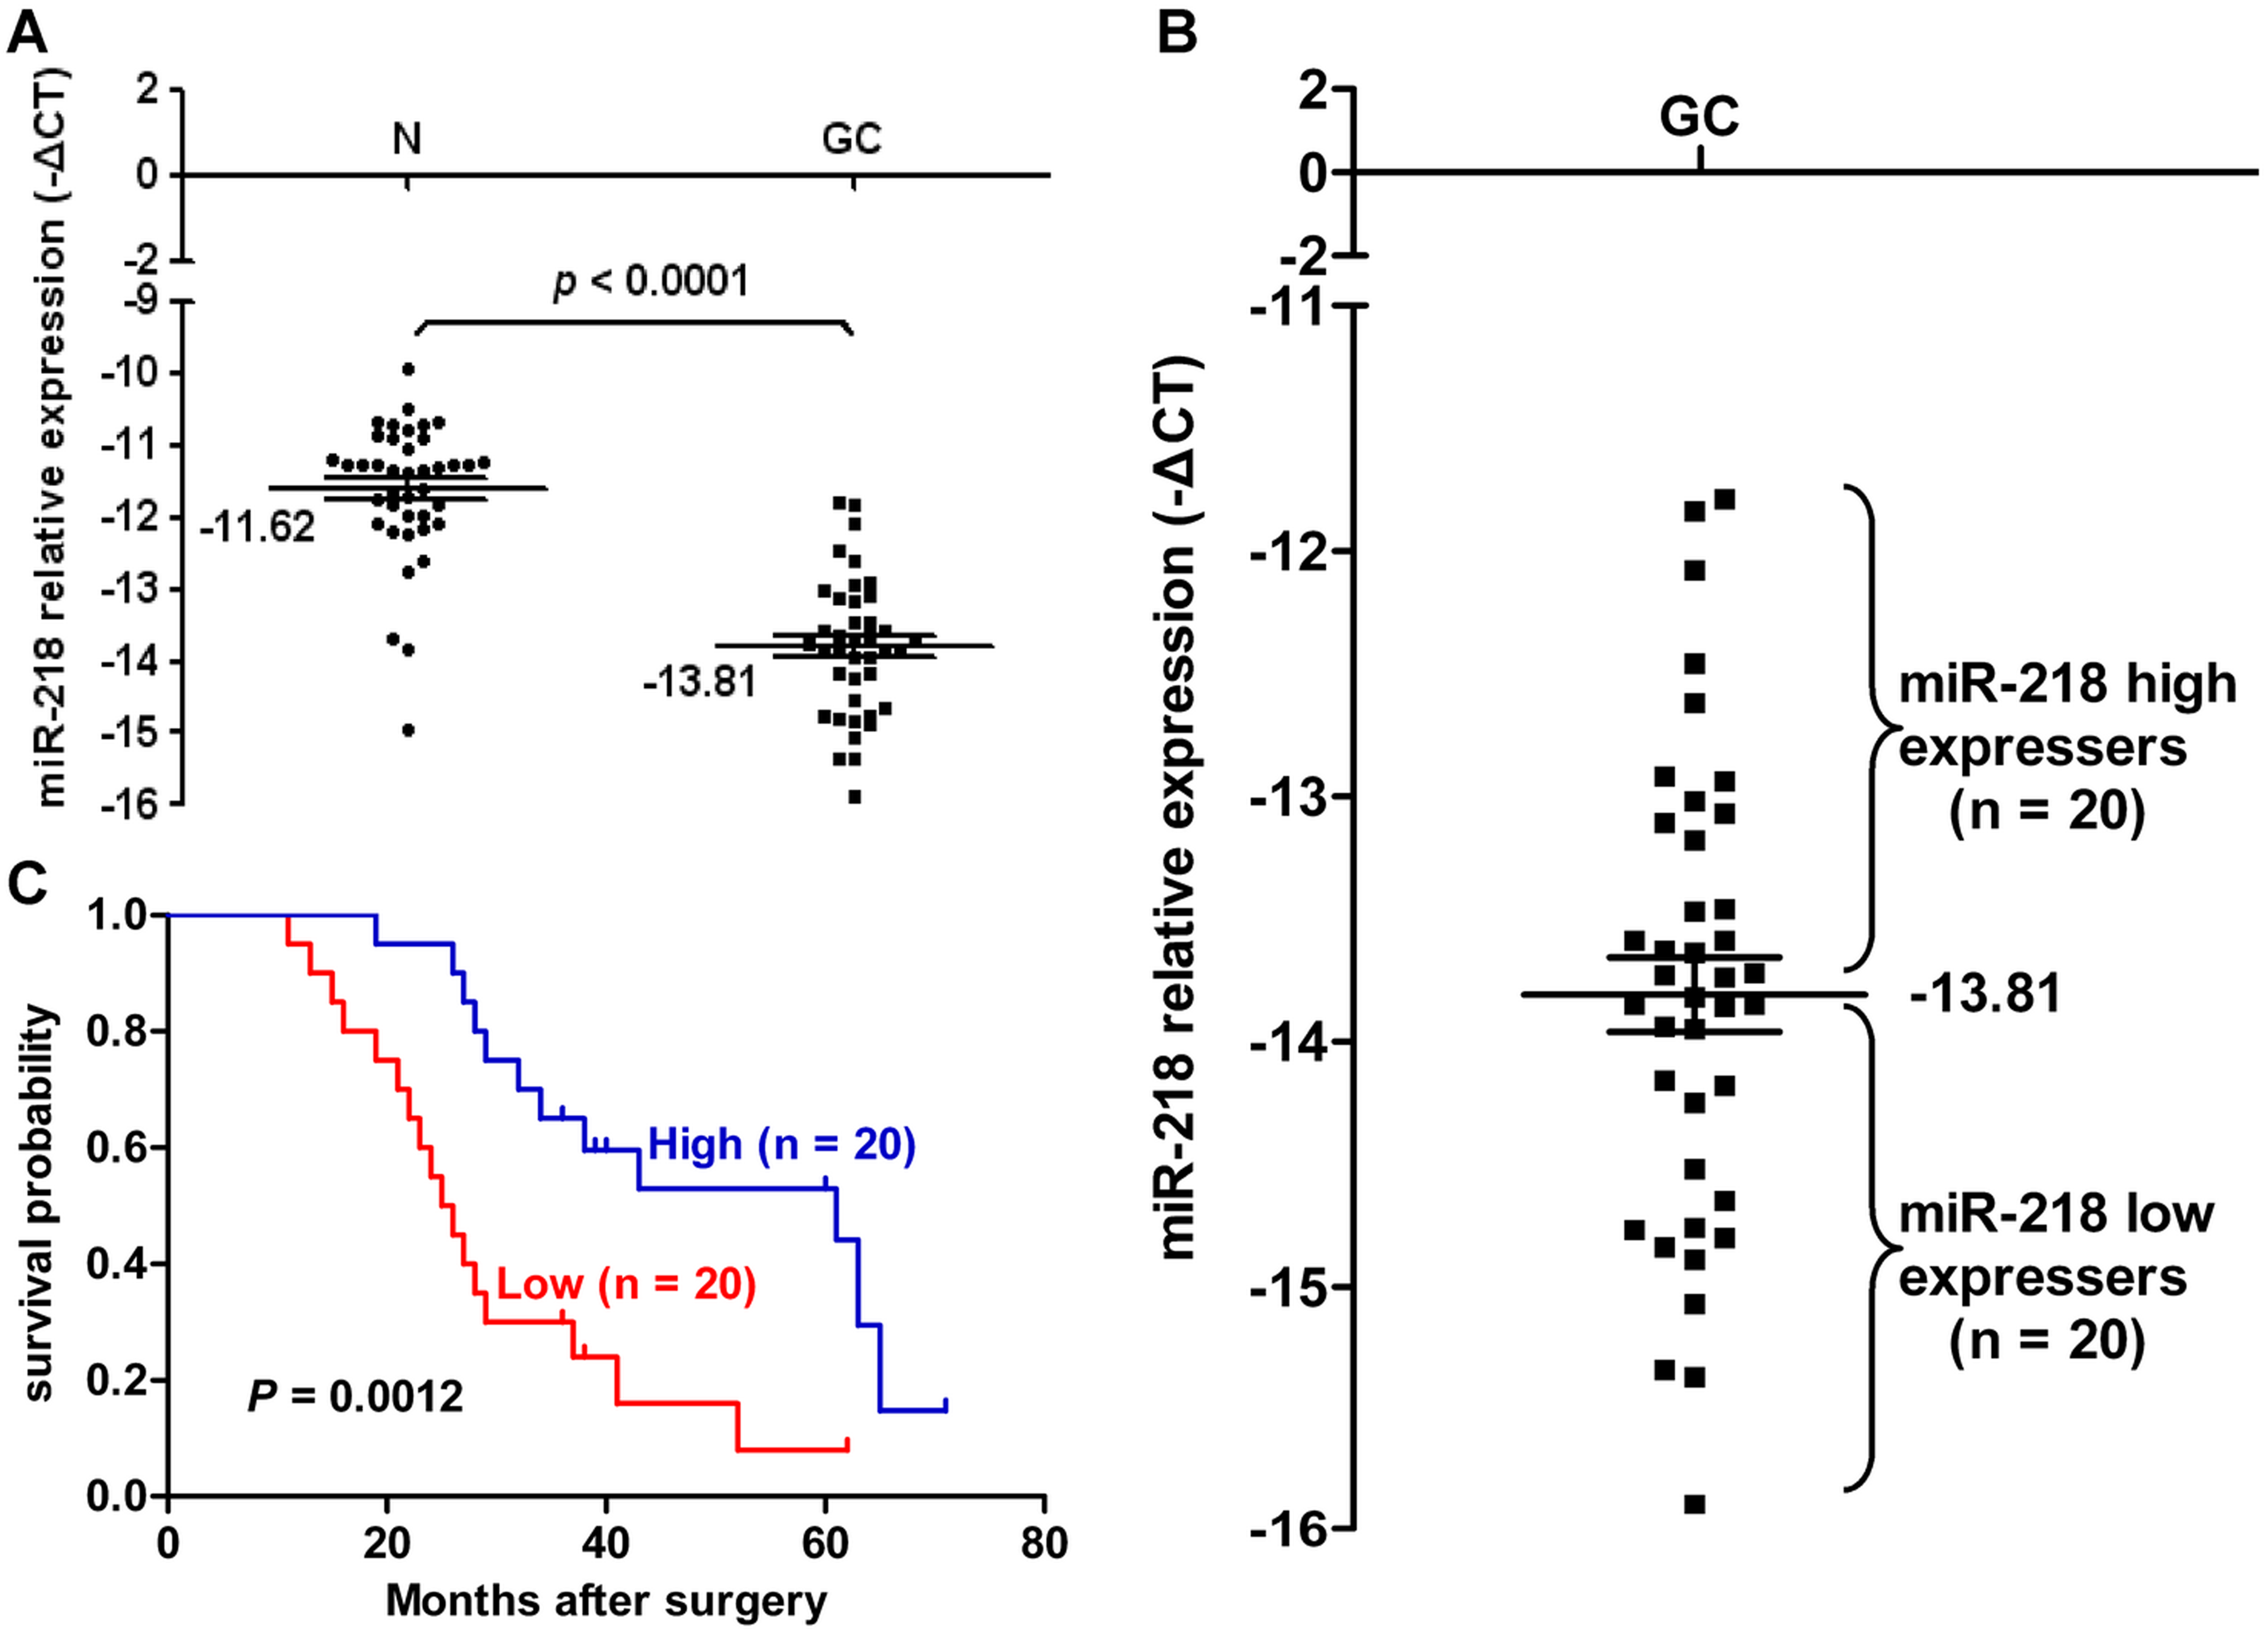 miR-218 expression in clinical GC specimens.